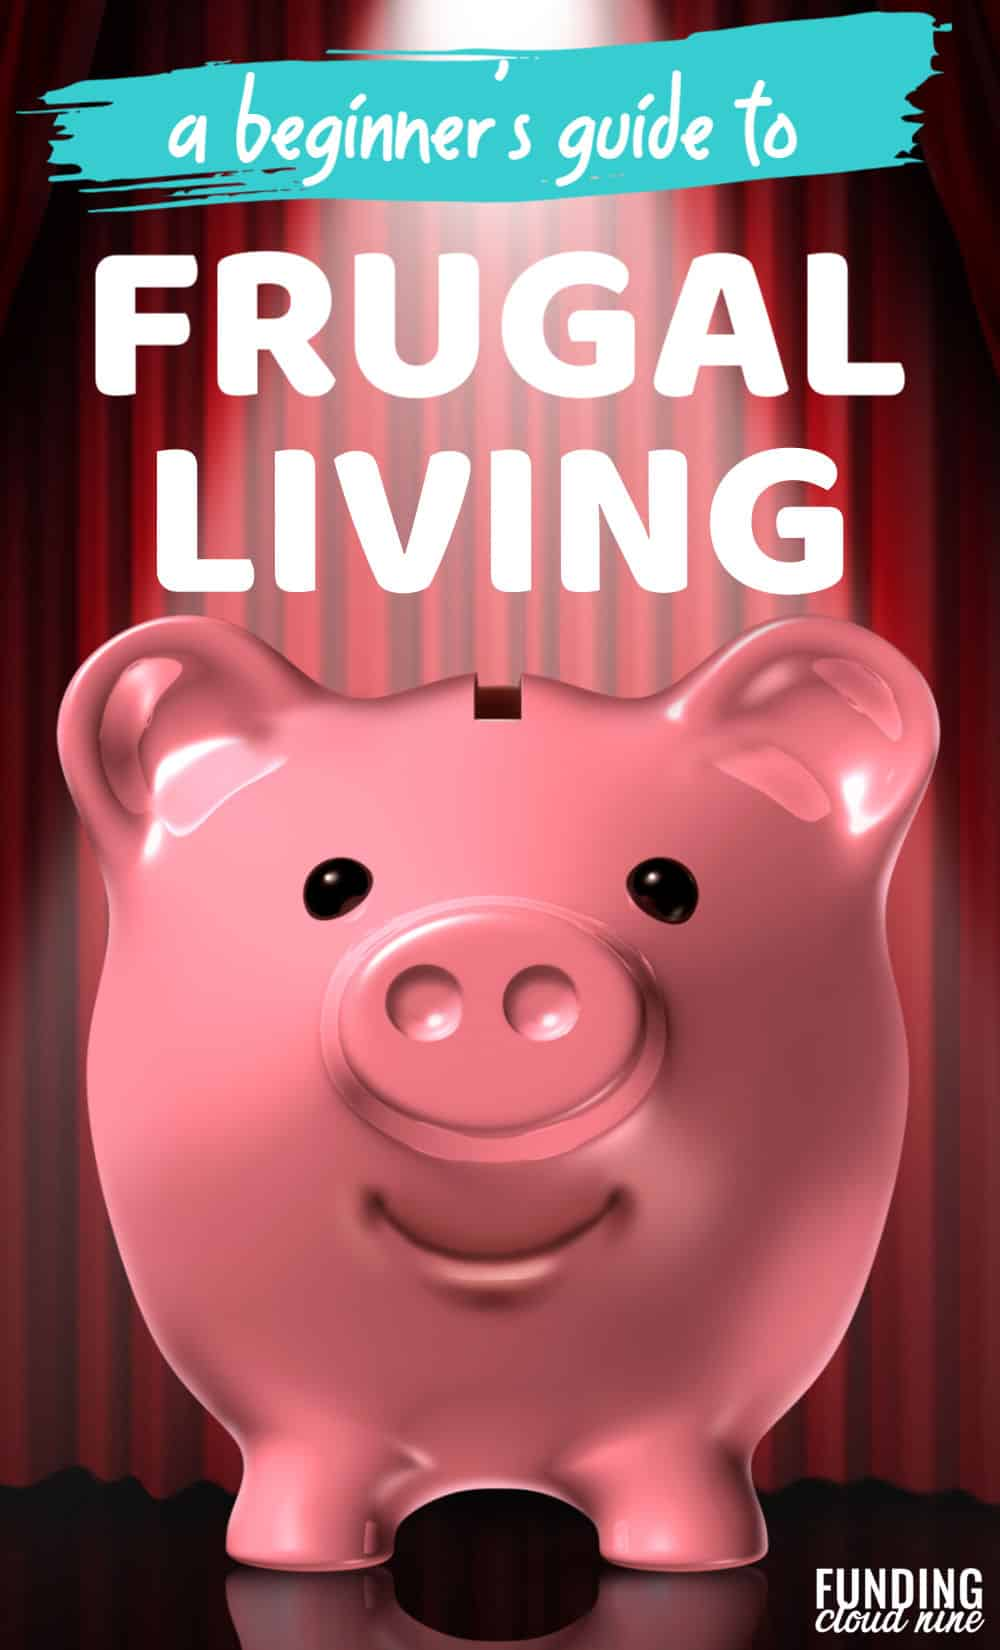 Frugal living can help you reach your financial goals faster. Keep reading for an introduction to frugality with some of the top frugal living tips.